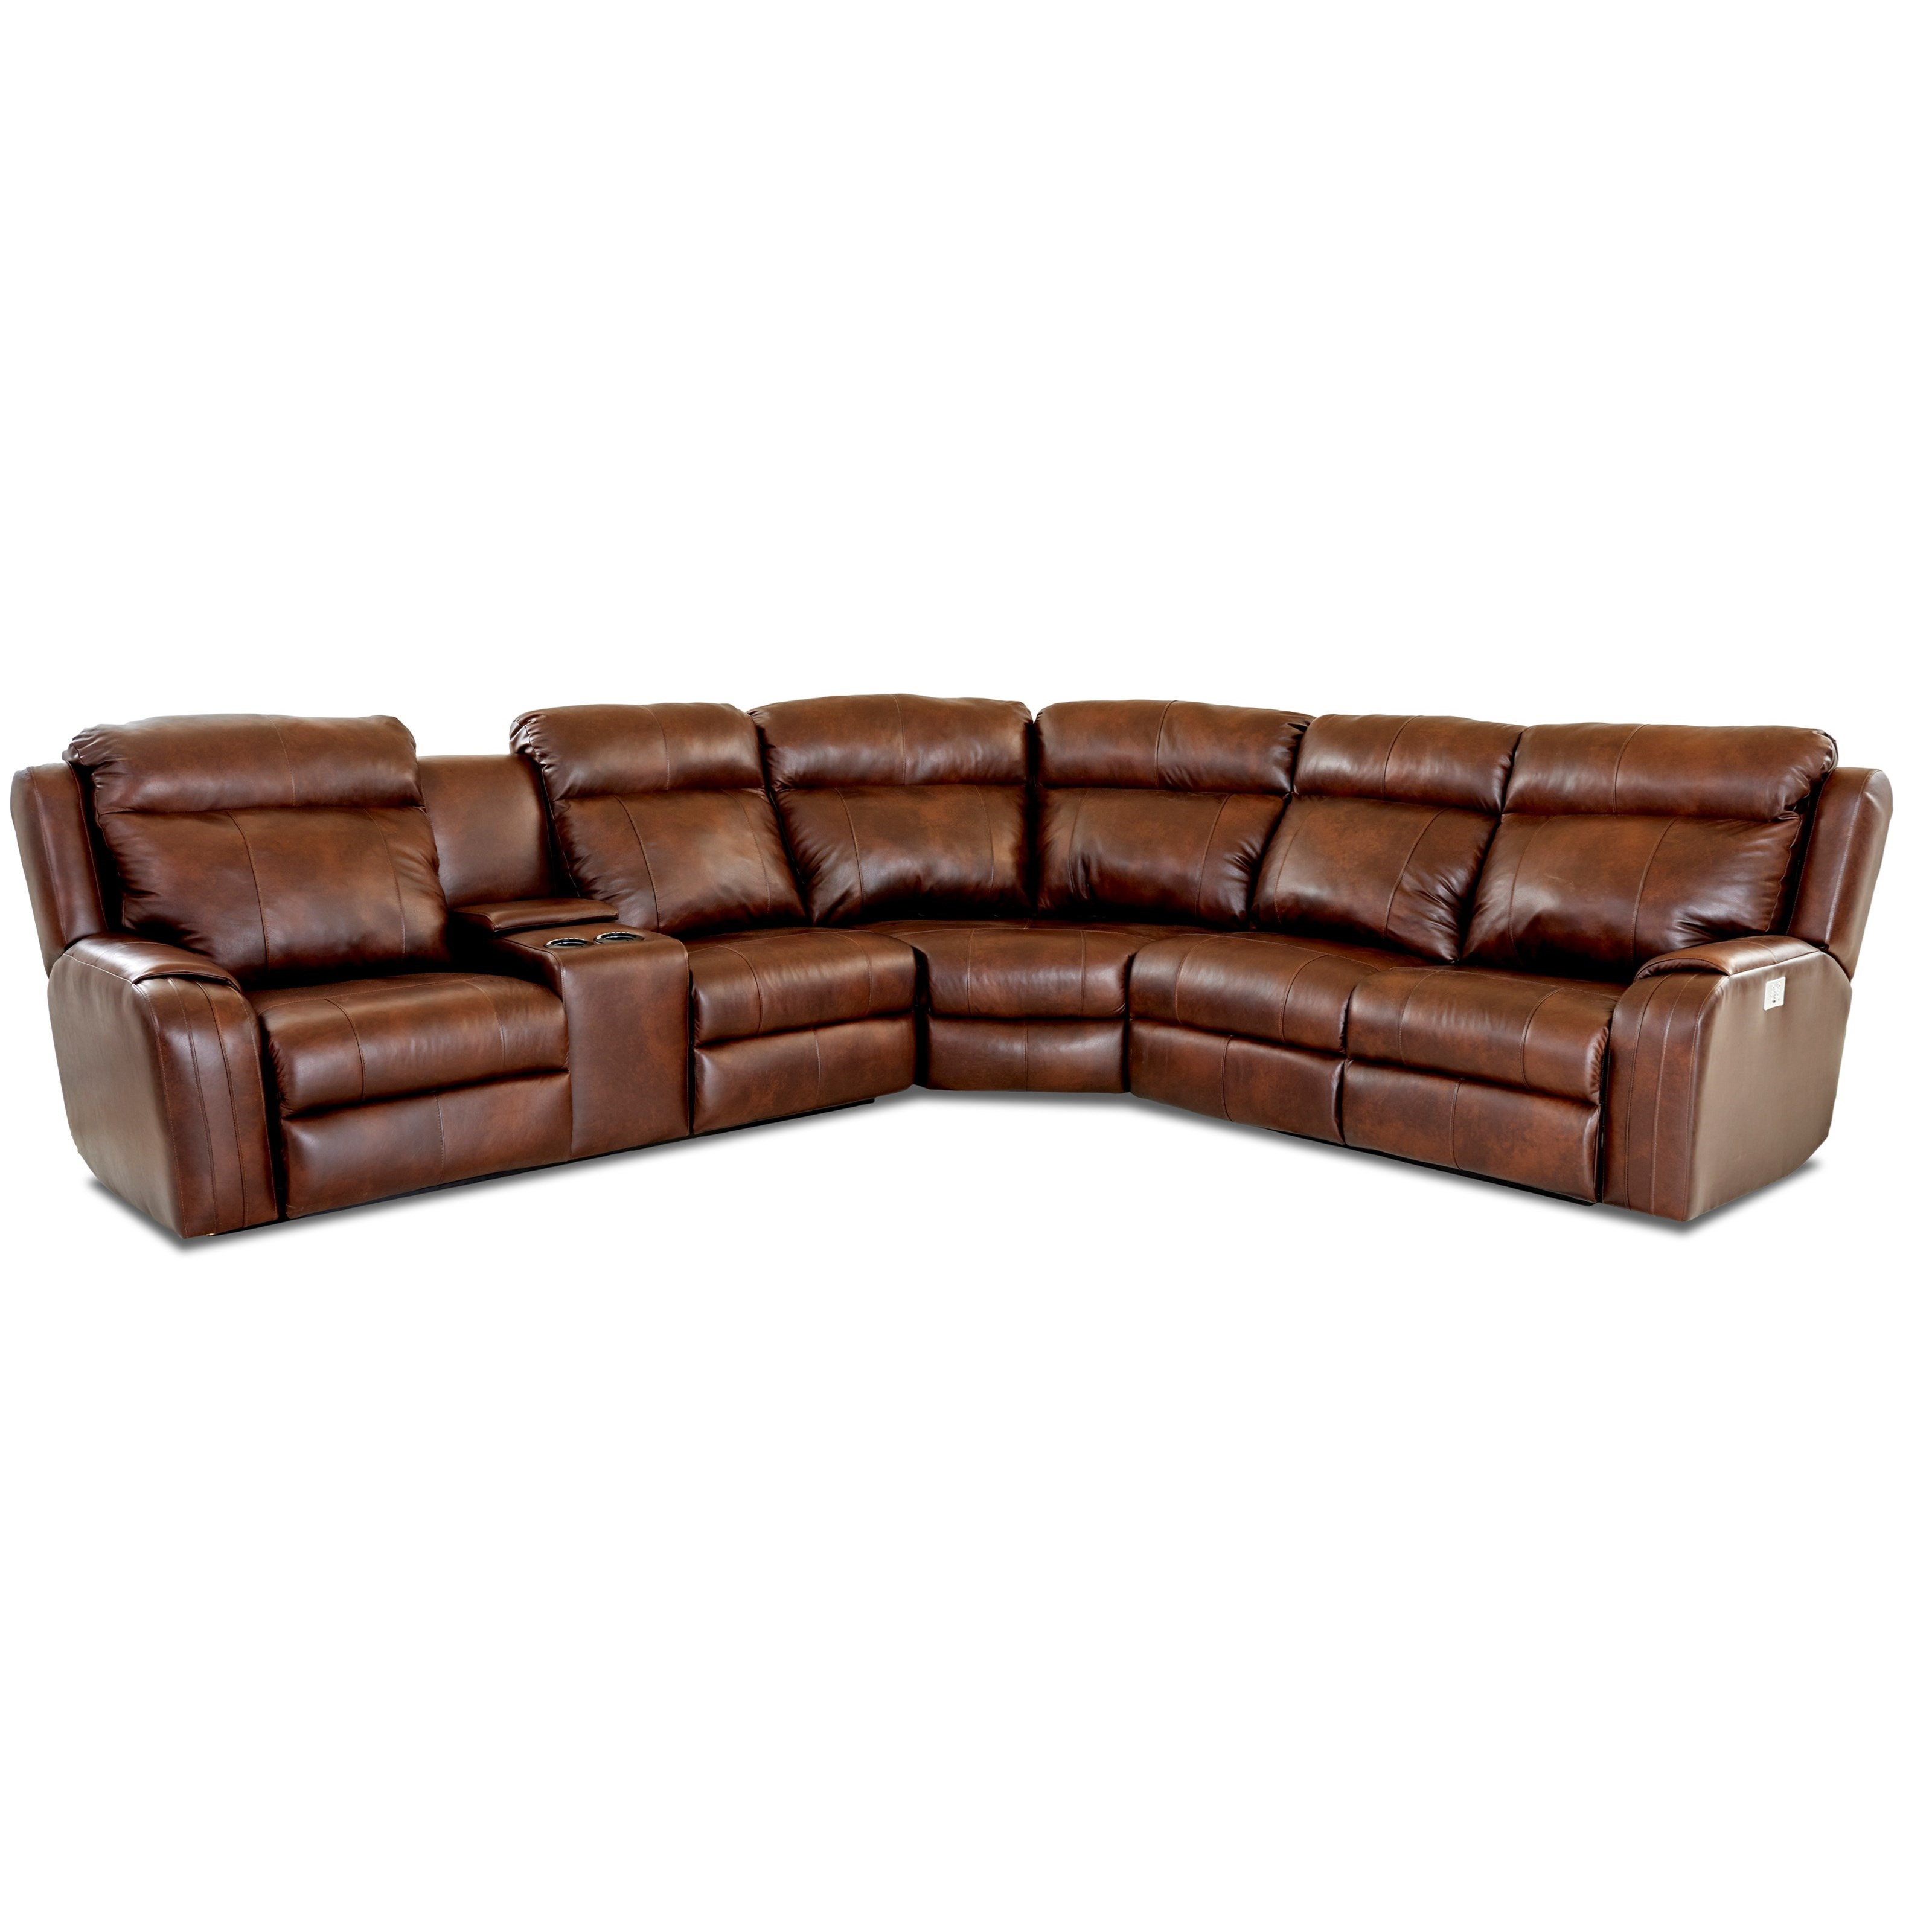 Four Seat Reclining Sectional Sofa With Cupholder Storage